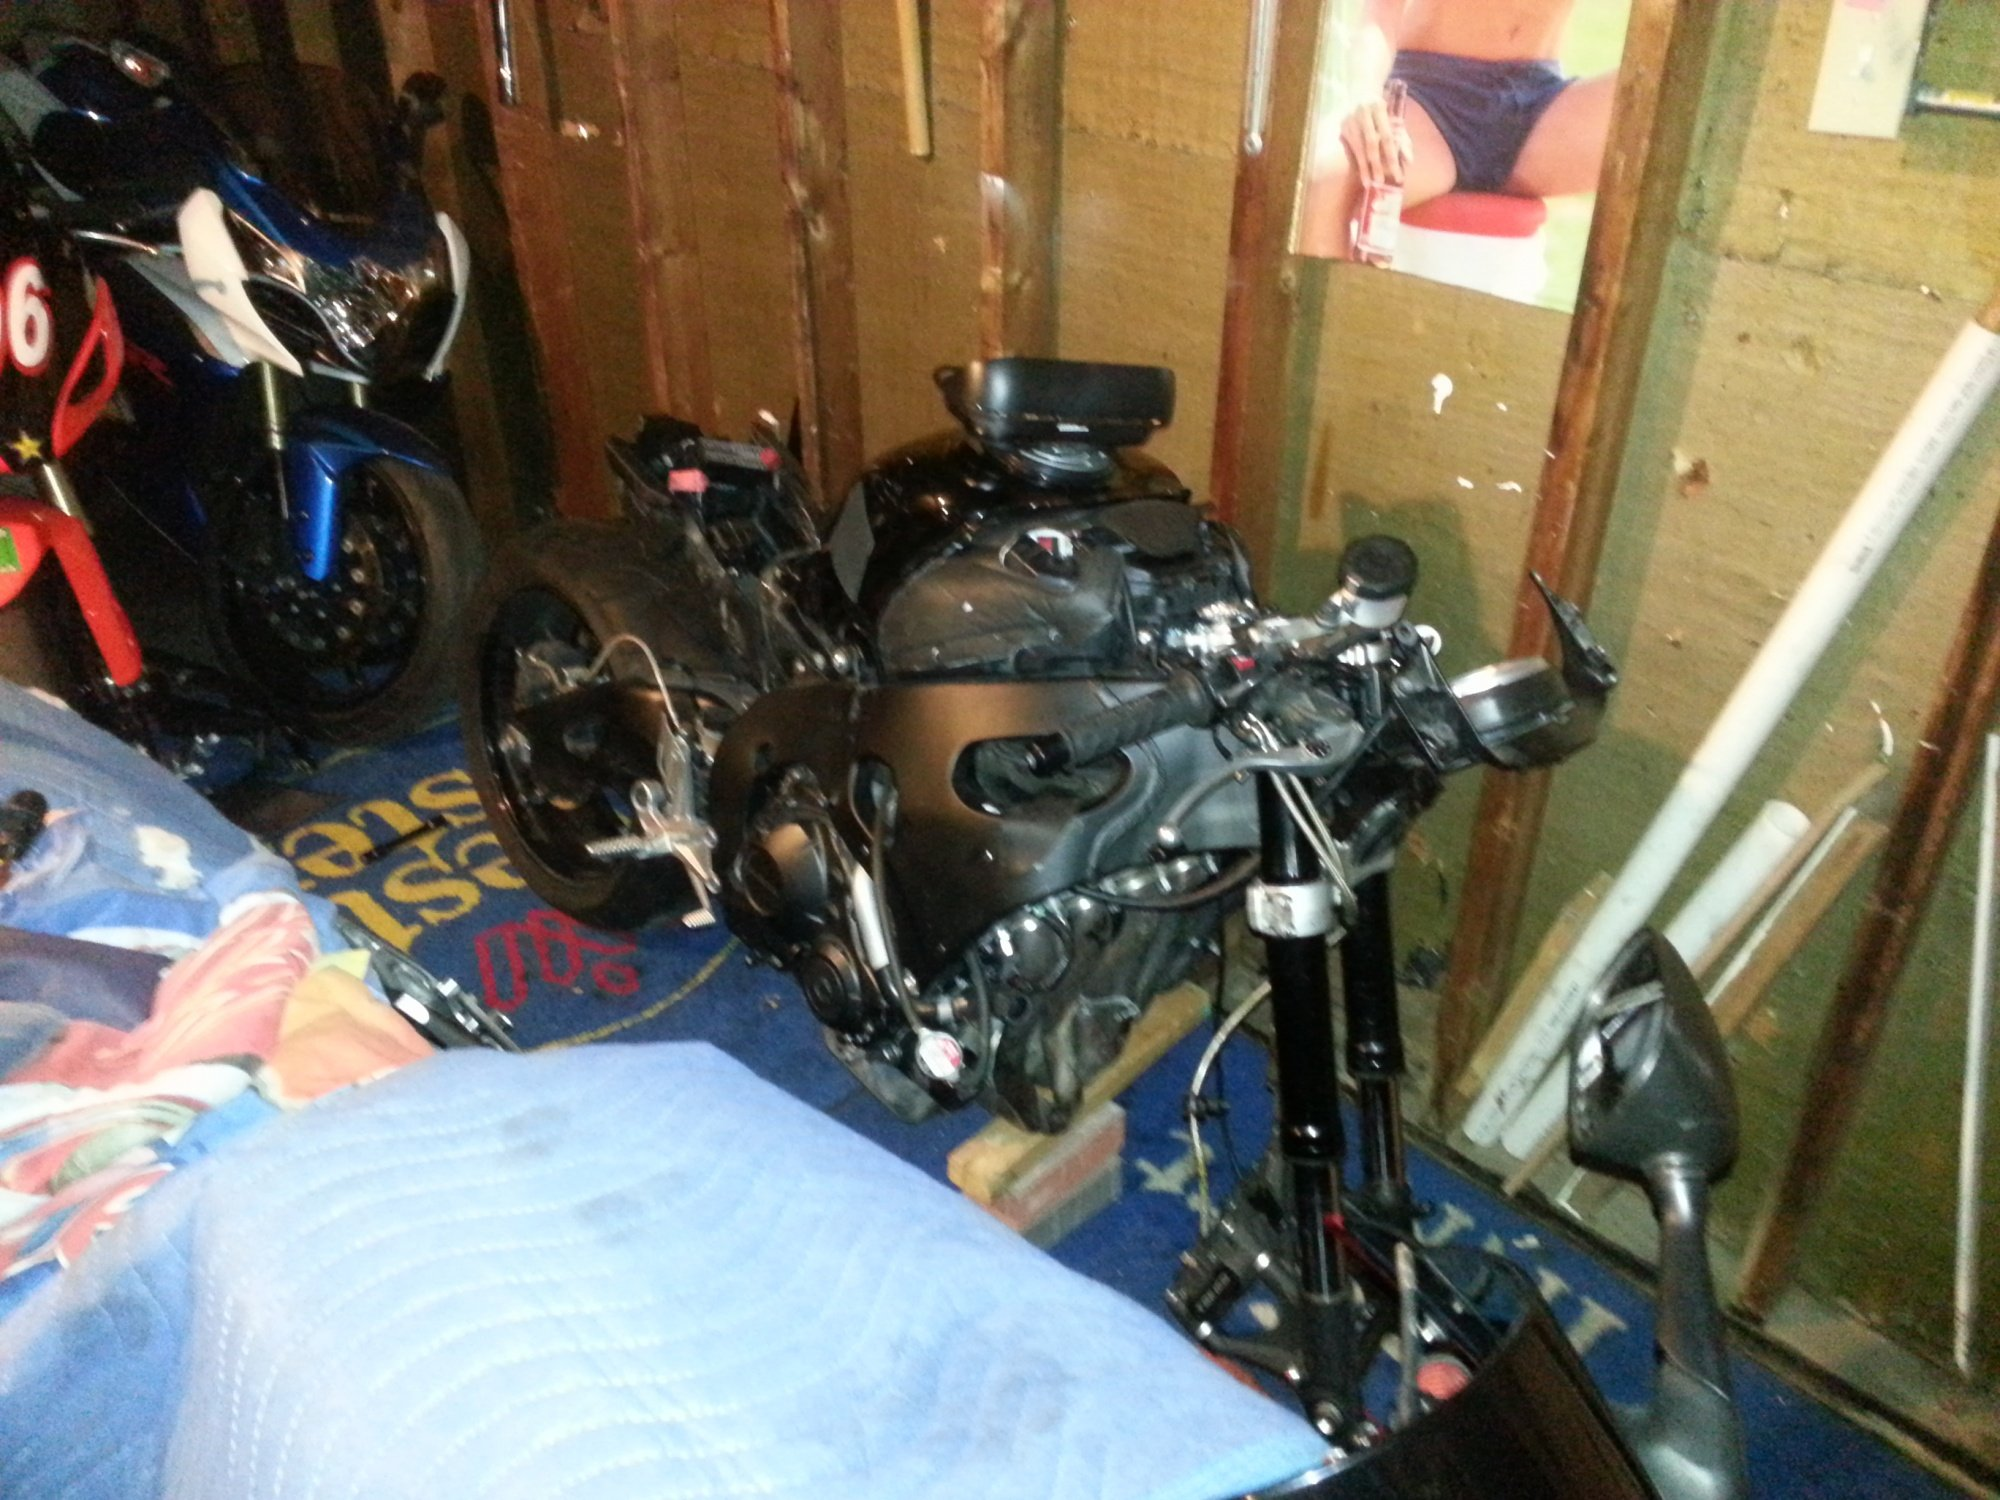 im almost done fixing  my 2008 cbr 1000 i was a trashed bike!-20121108_153126.jpg